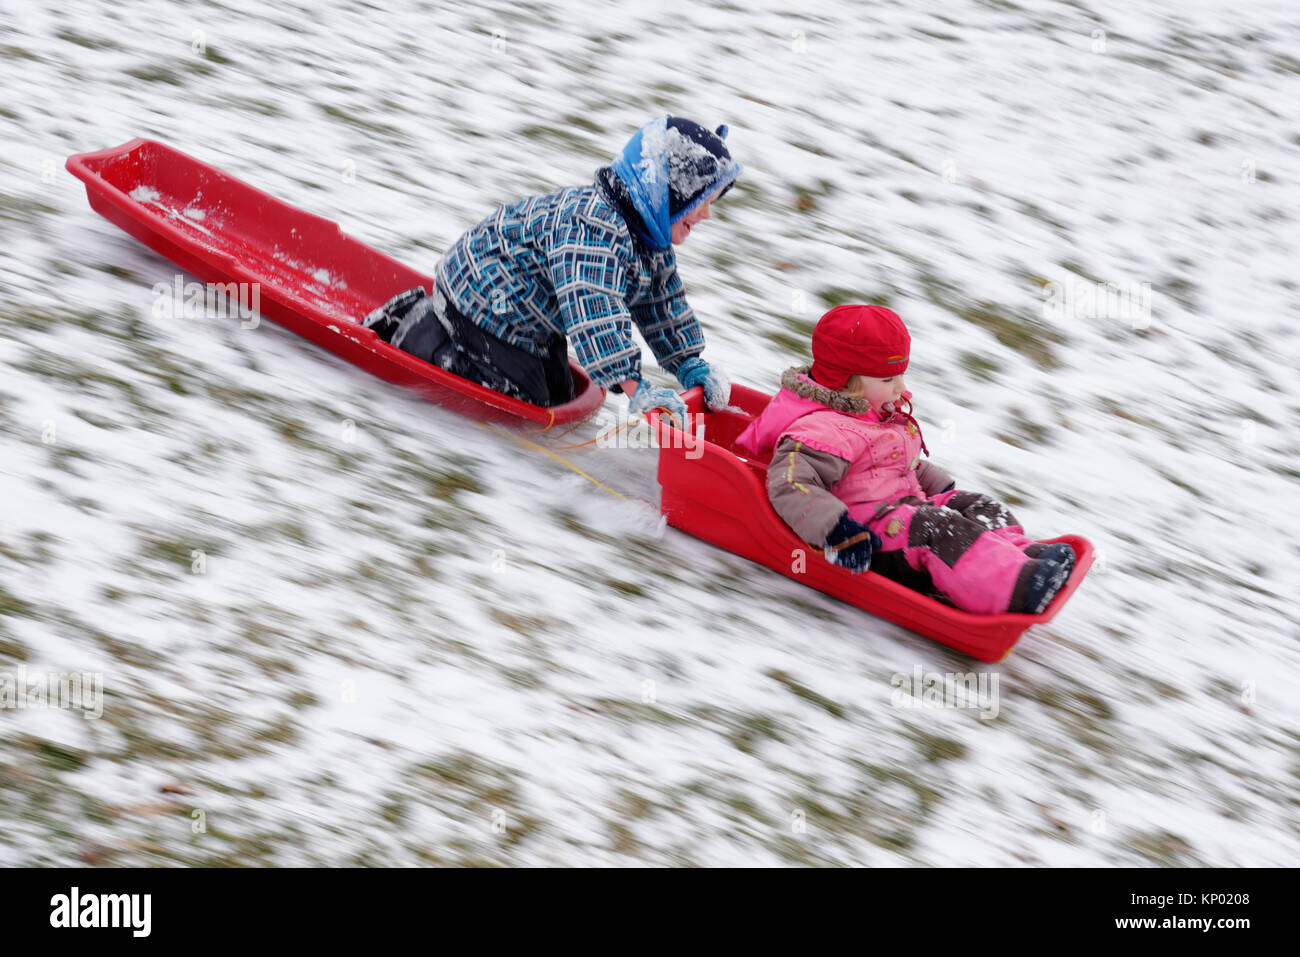 Brother and sister (5 and 3 yrs old) sledging together in Quebec City - Stock Image